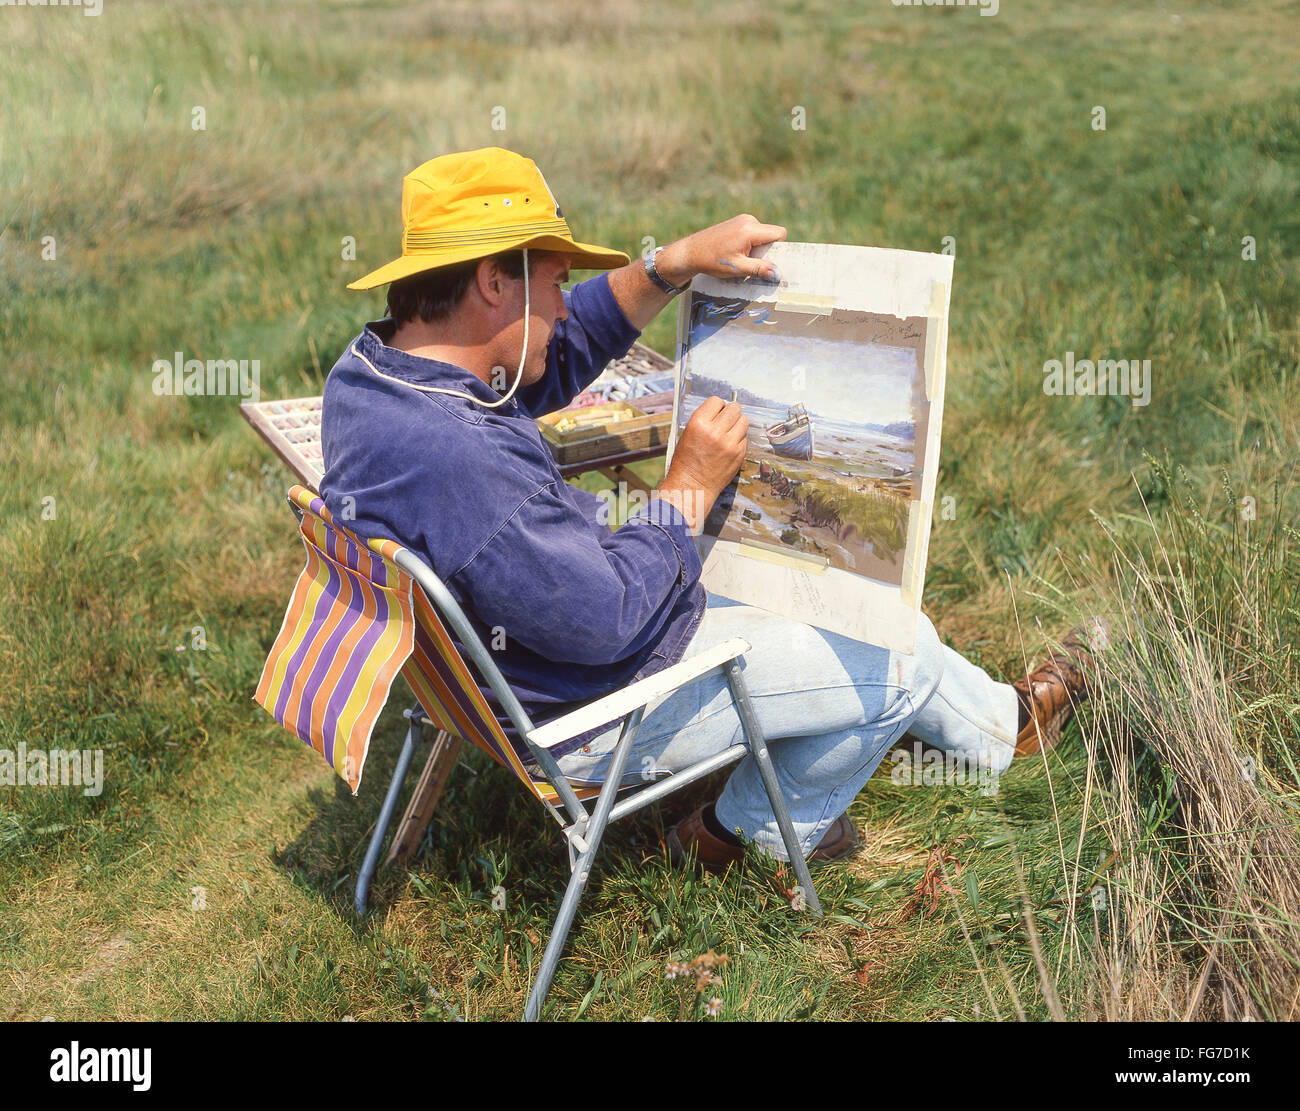 Male artist painting landscape near Aldeburgh, Suffolk, England, United Kingdom Stock Photo